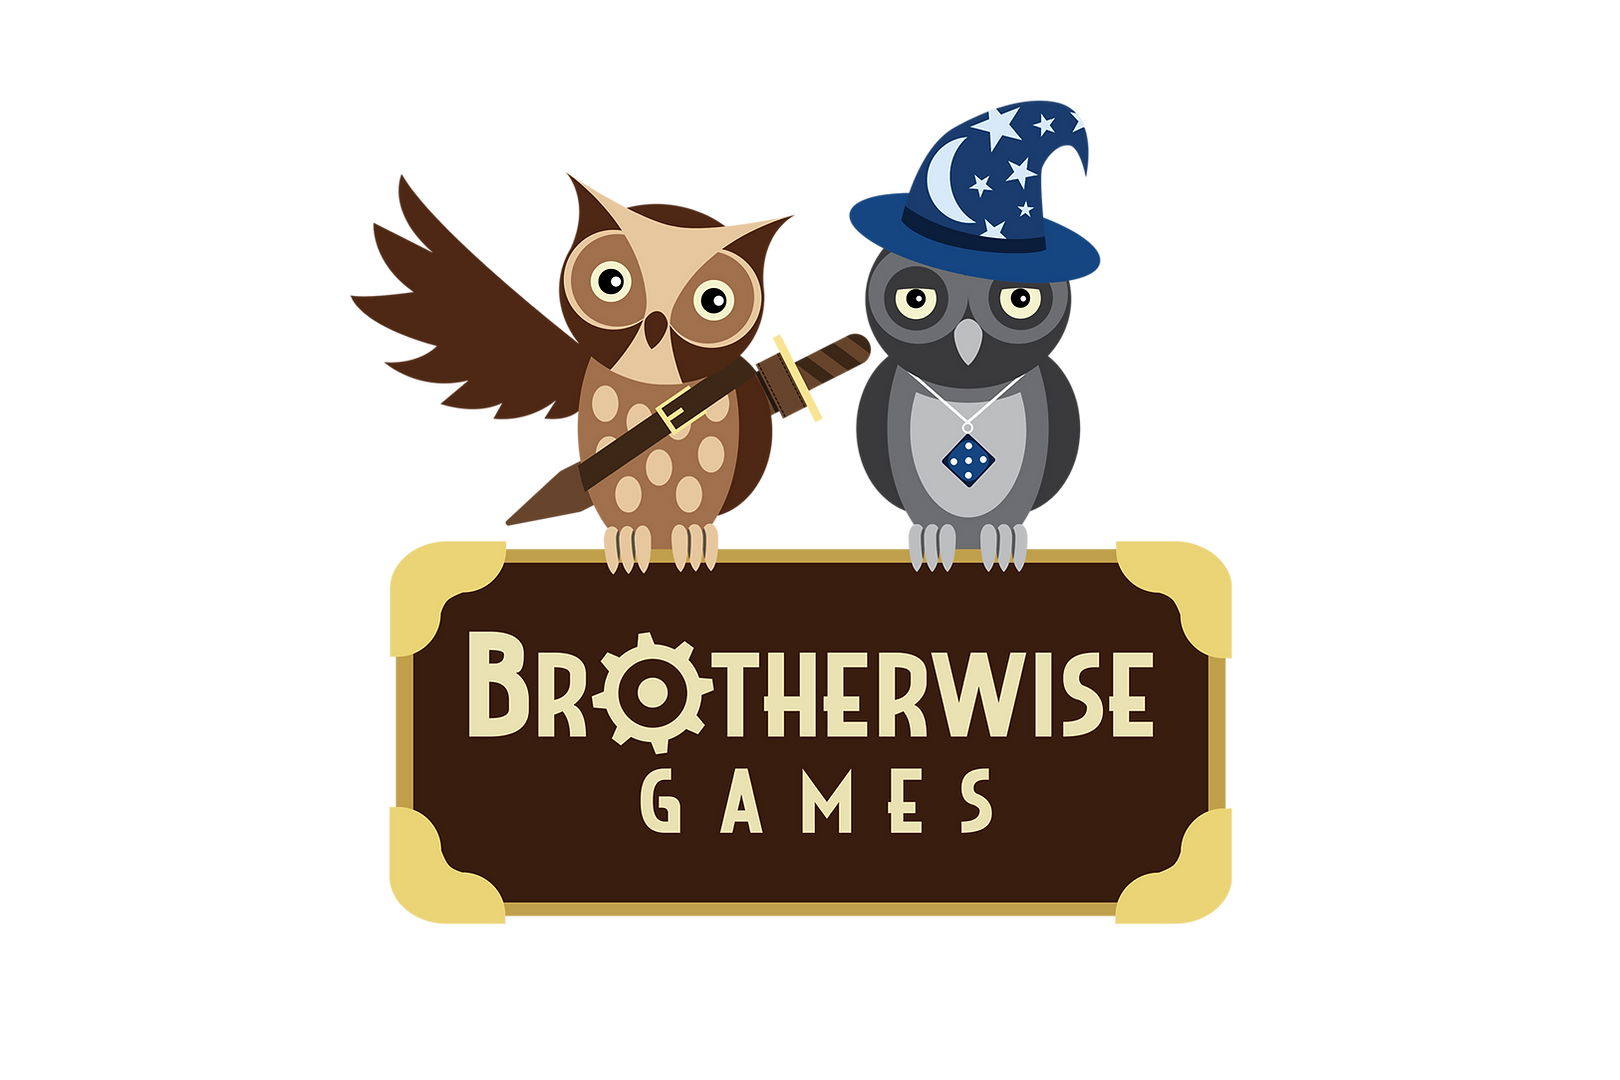 brotherwise-games-logo_1920x1280.png